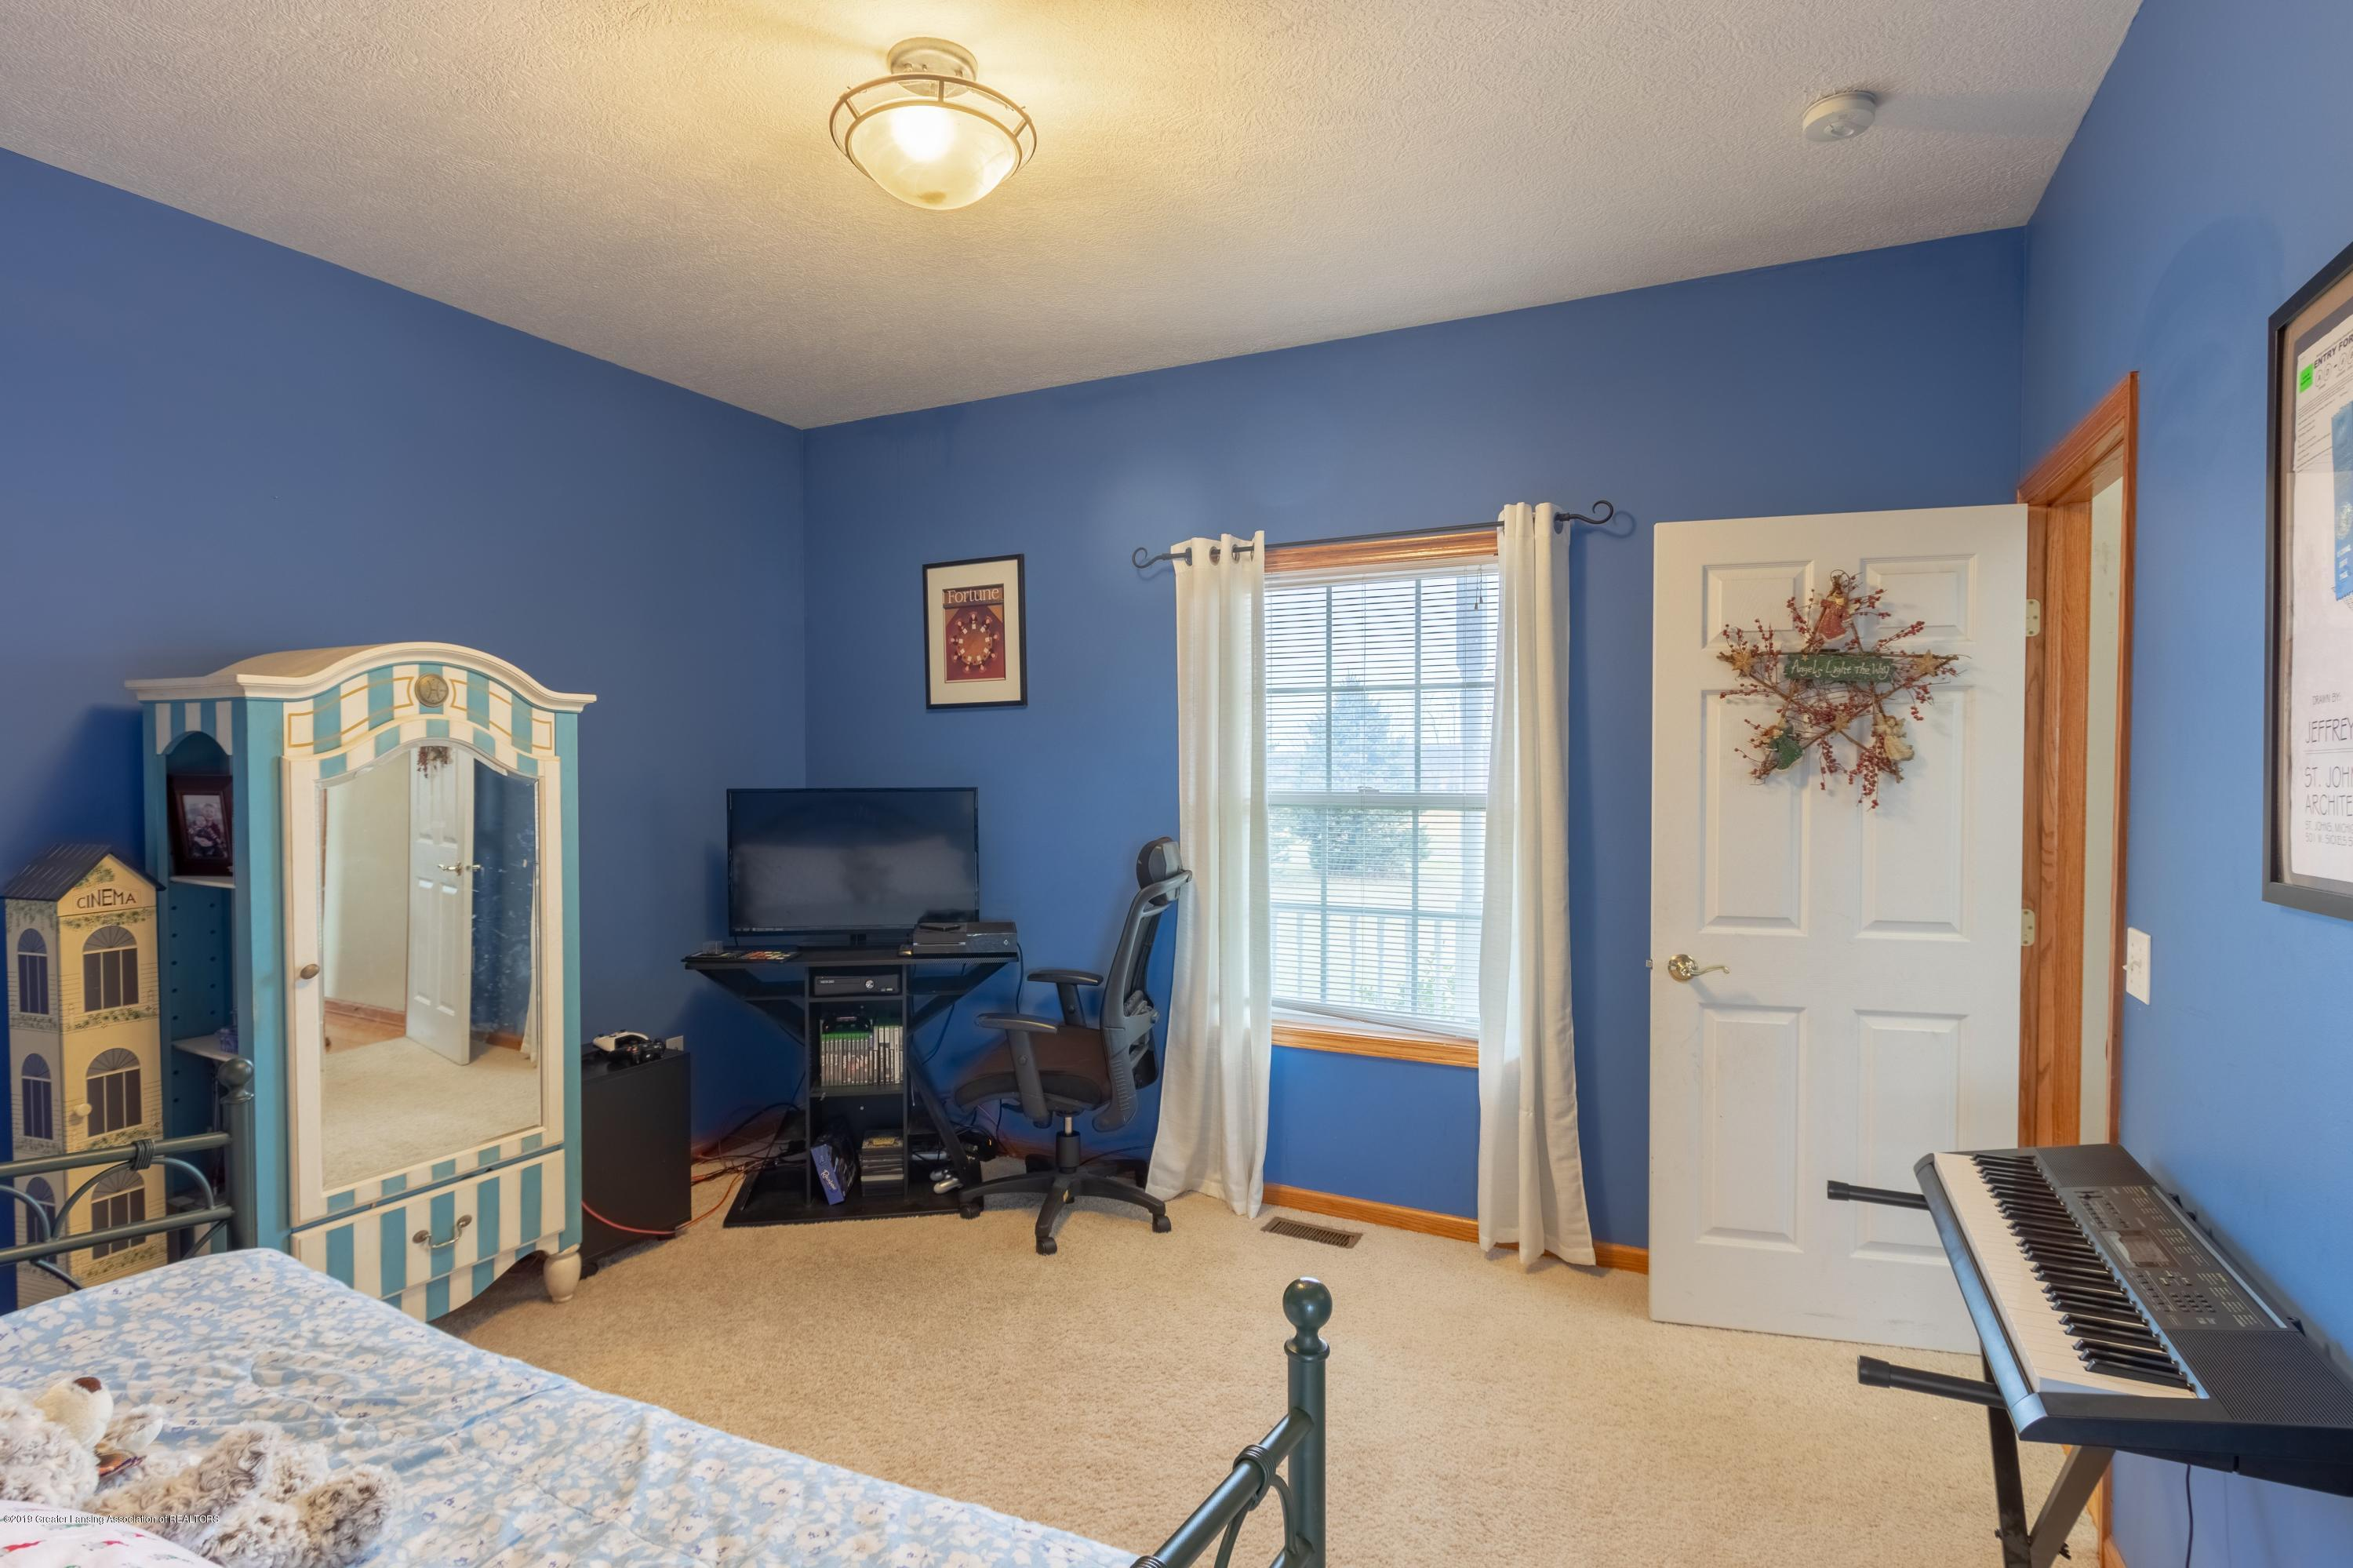 6121 W Centerline Rd - Bedroom - 15